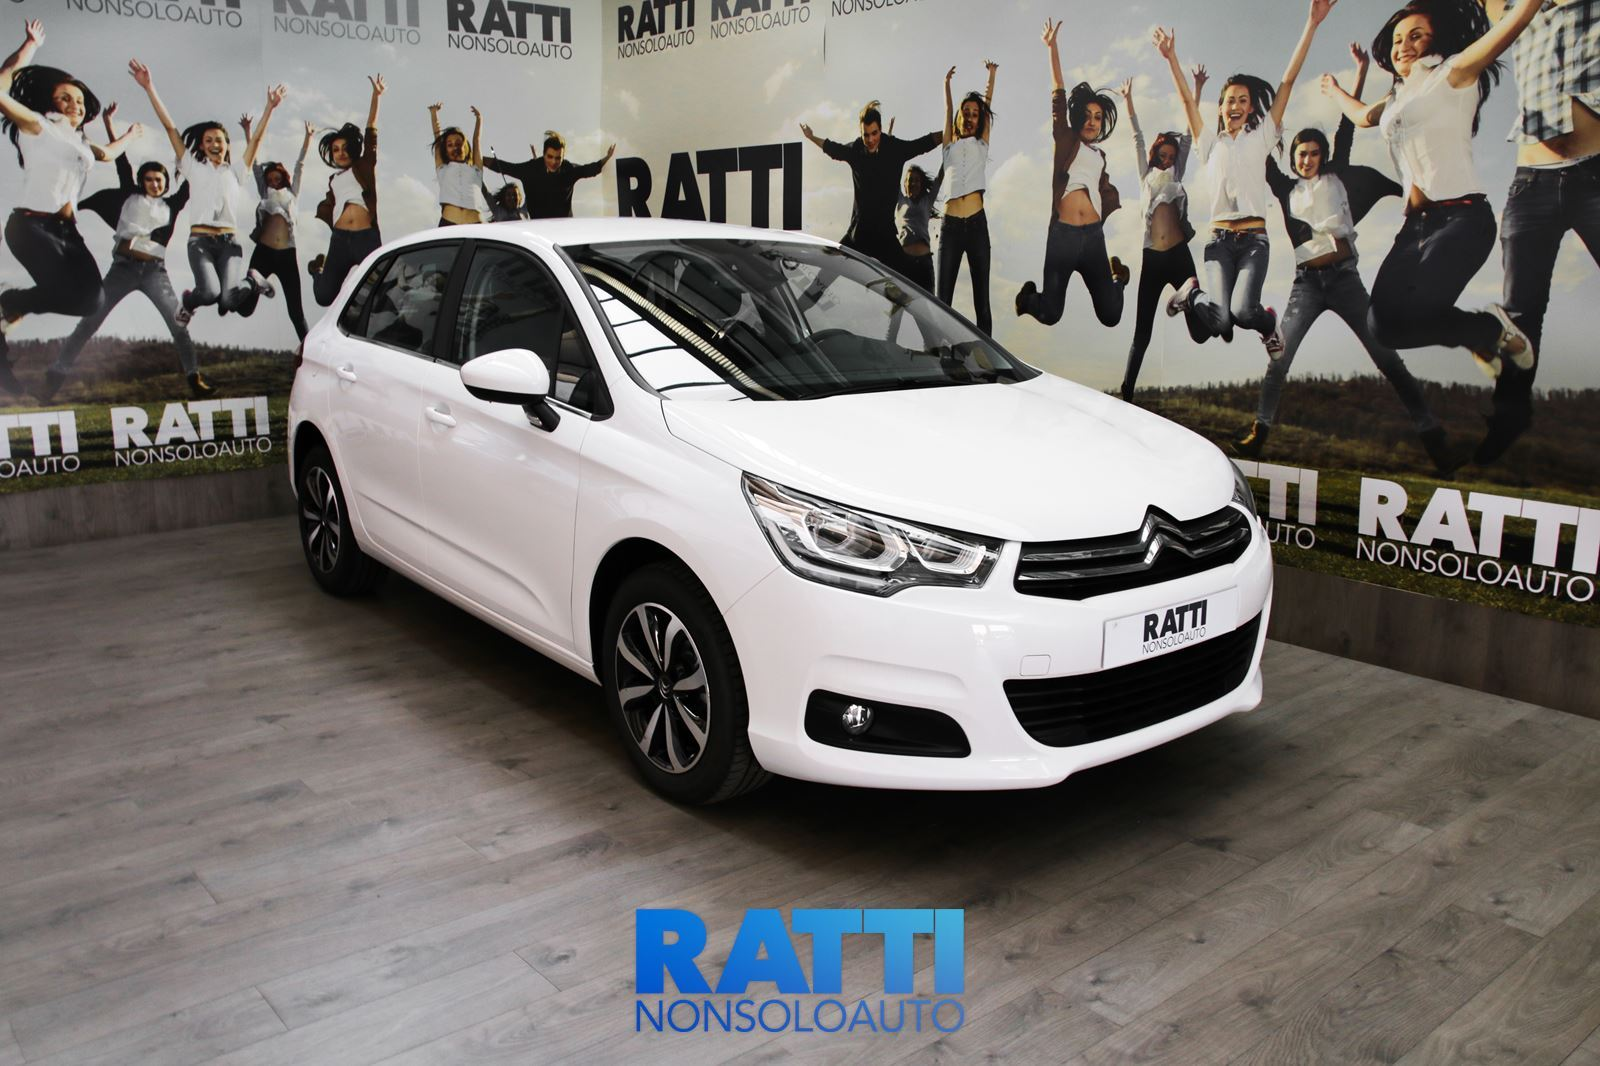 CITROEN C4 1.6 BlueHDi 100 CV Feel BIANCO BANCHISA cambio Manuale Diesel Km 0 berlina due volumi 5 porte 5 posti EURO 6